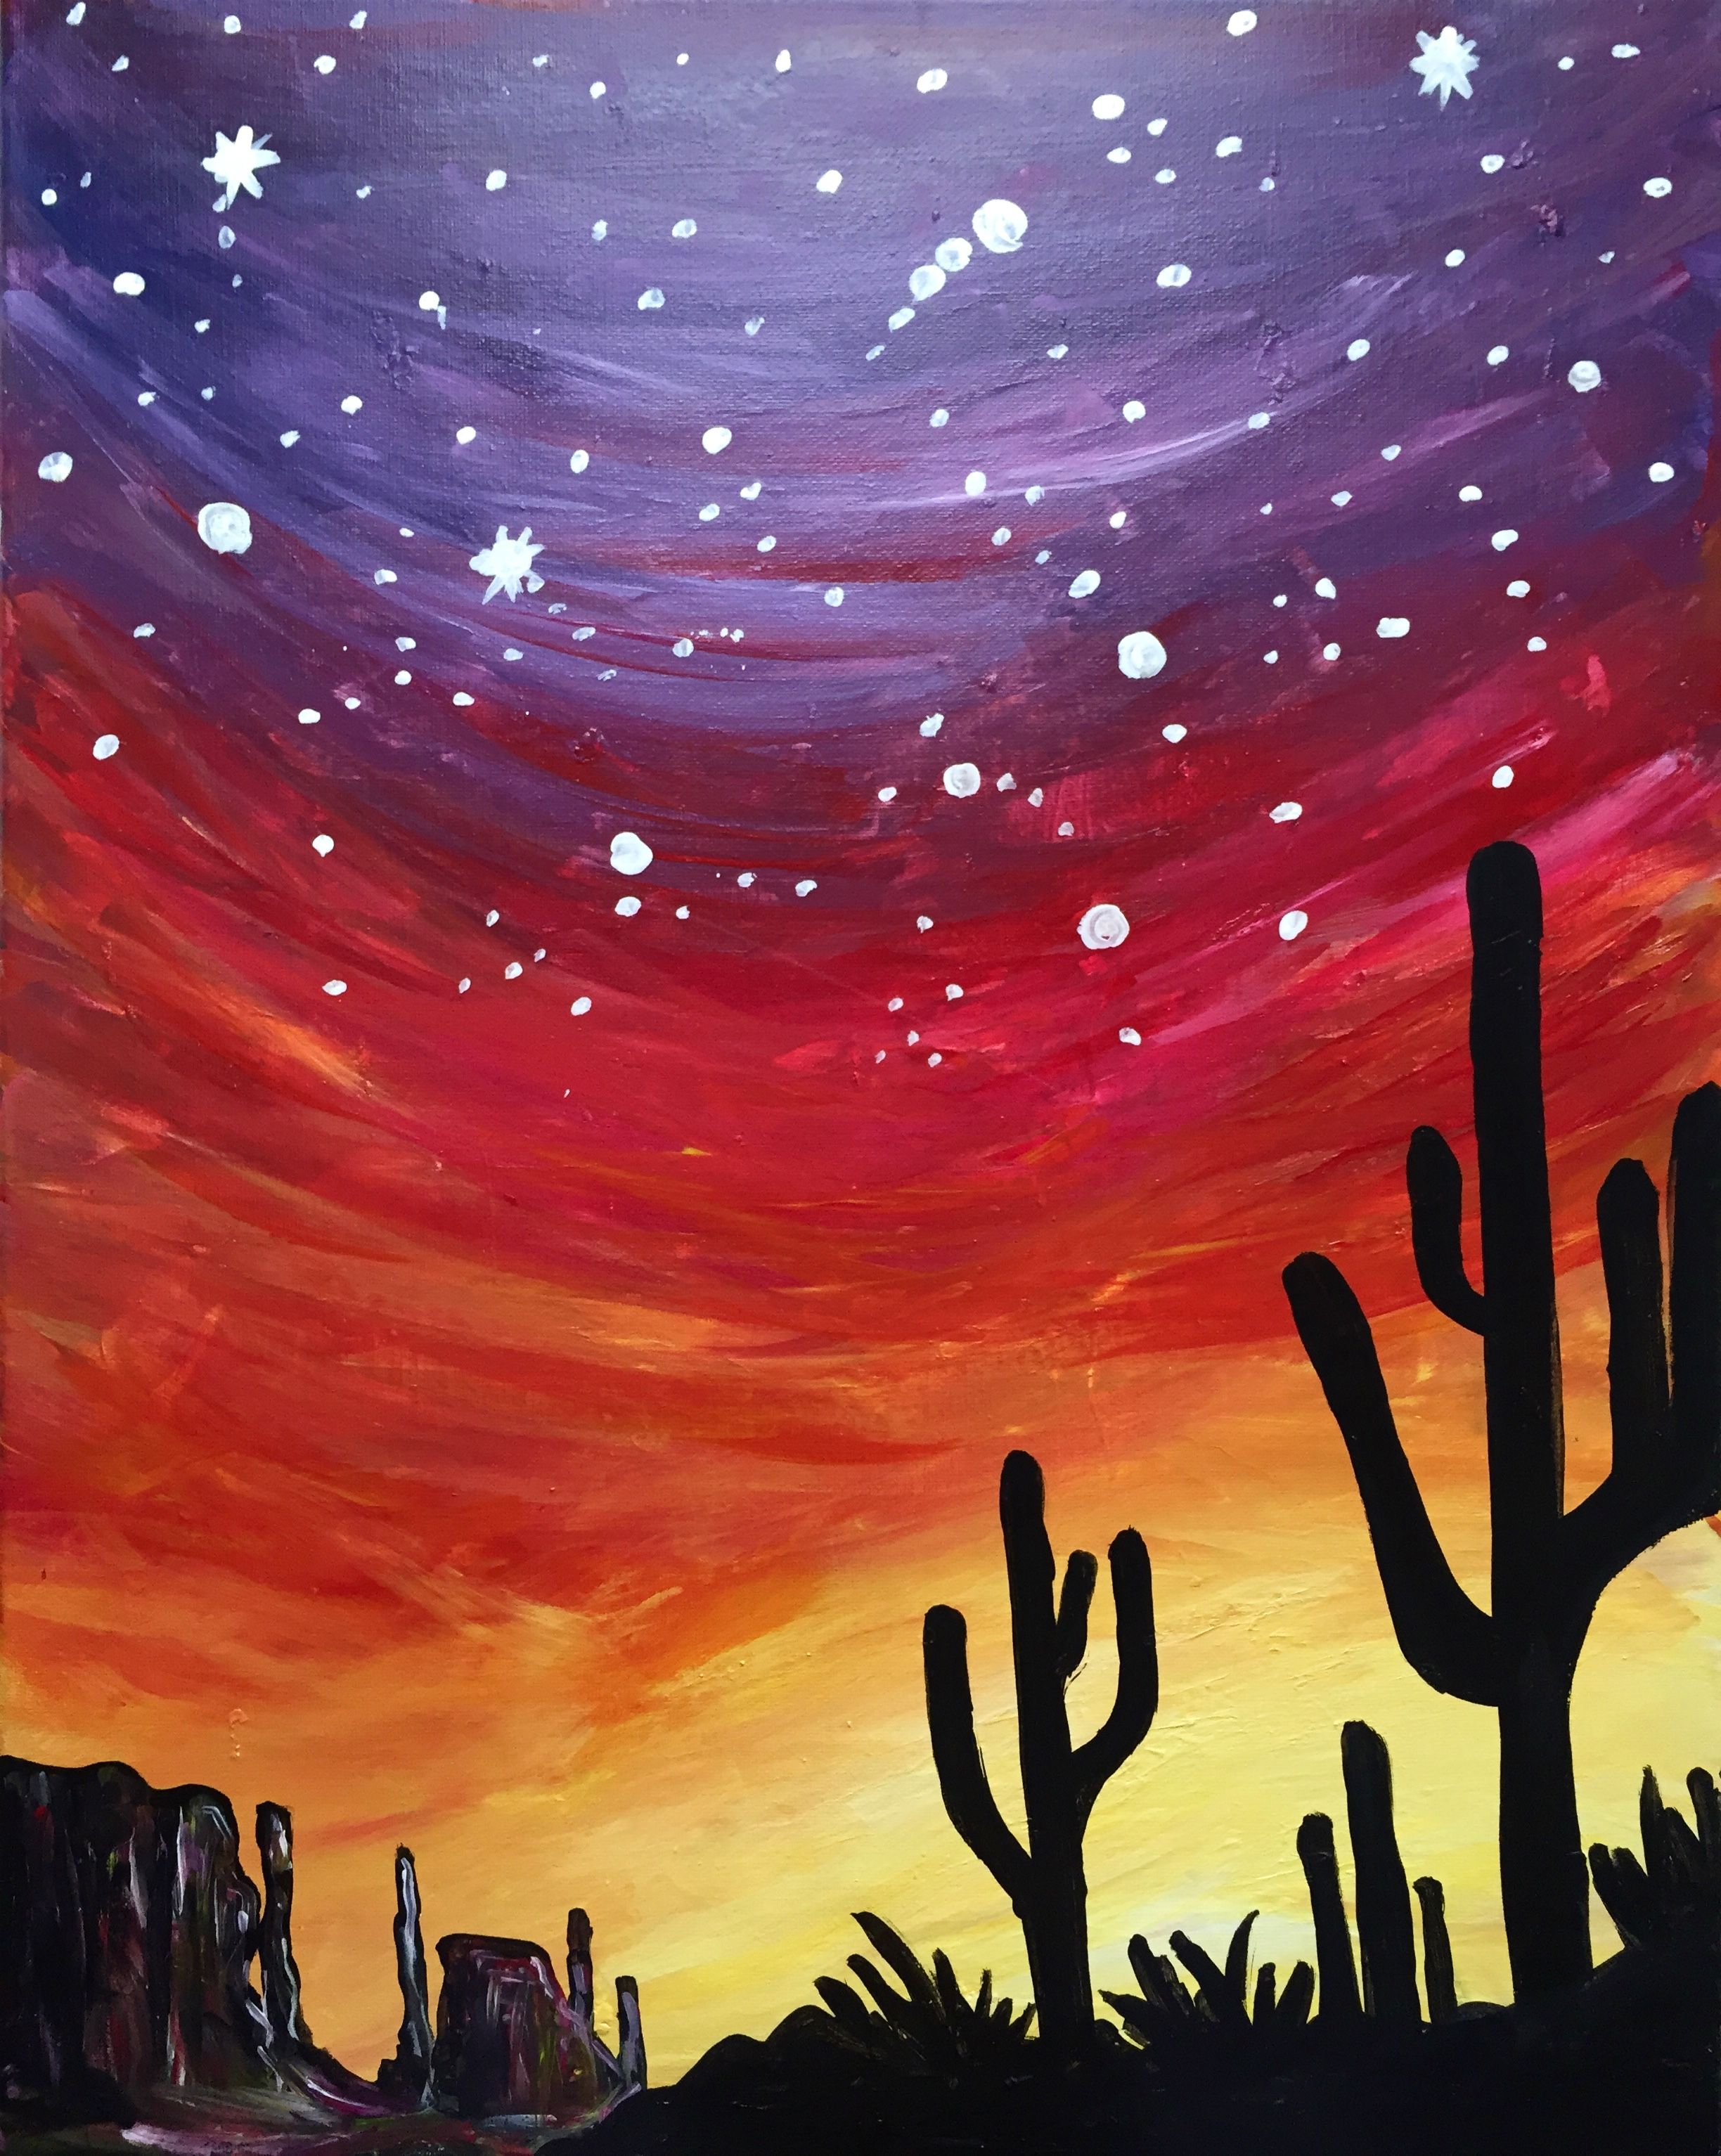 Paint Nite Drink Party We Host Painting Events At Local Bars Come Join Us For A